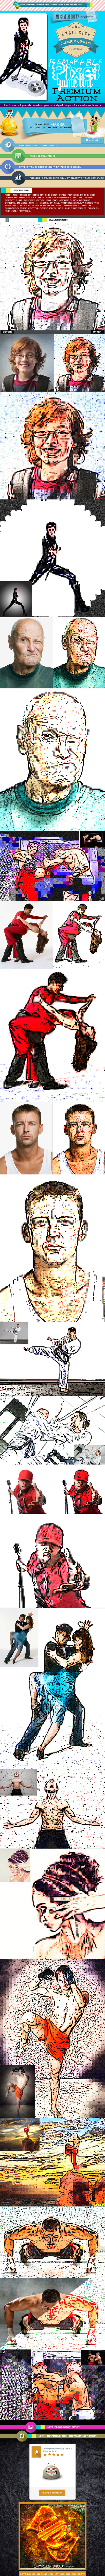 Remarkable Game Pixel Art - Photo Effects Actions